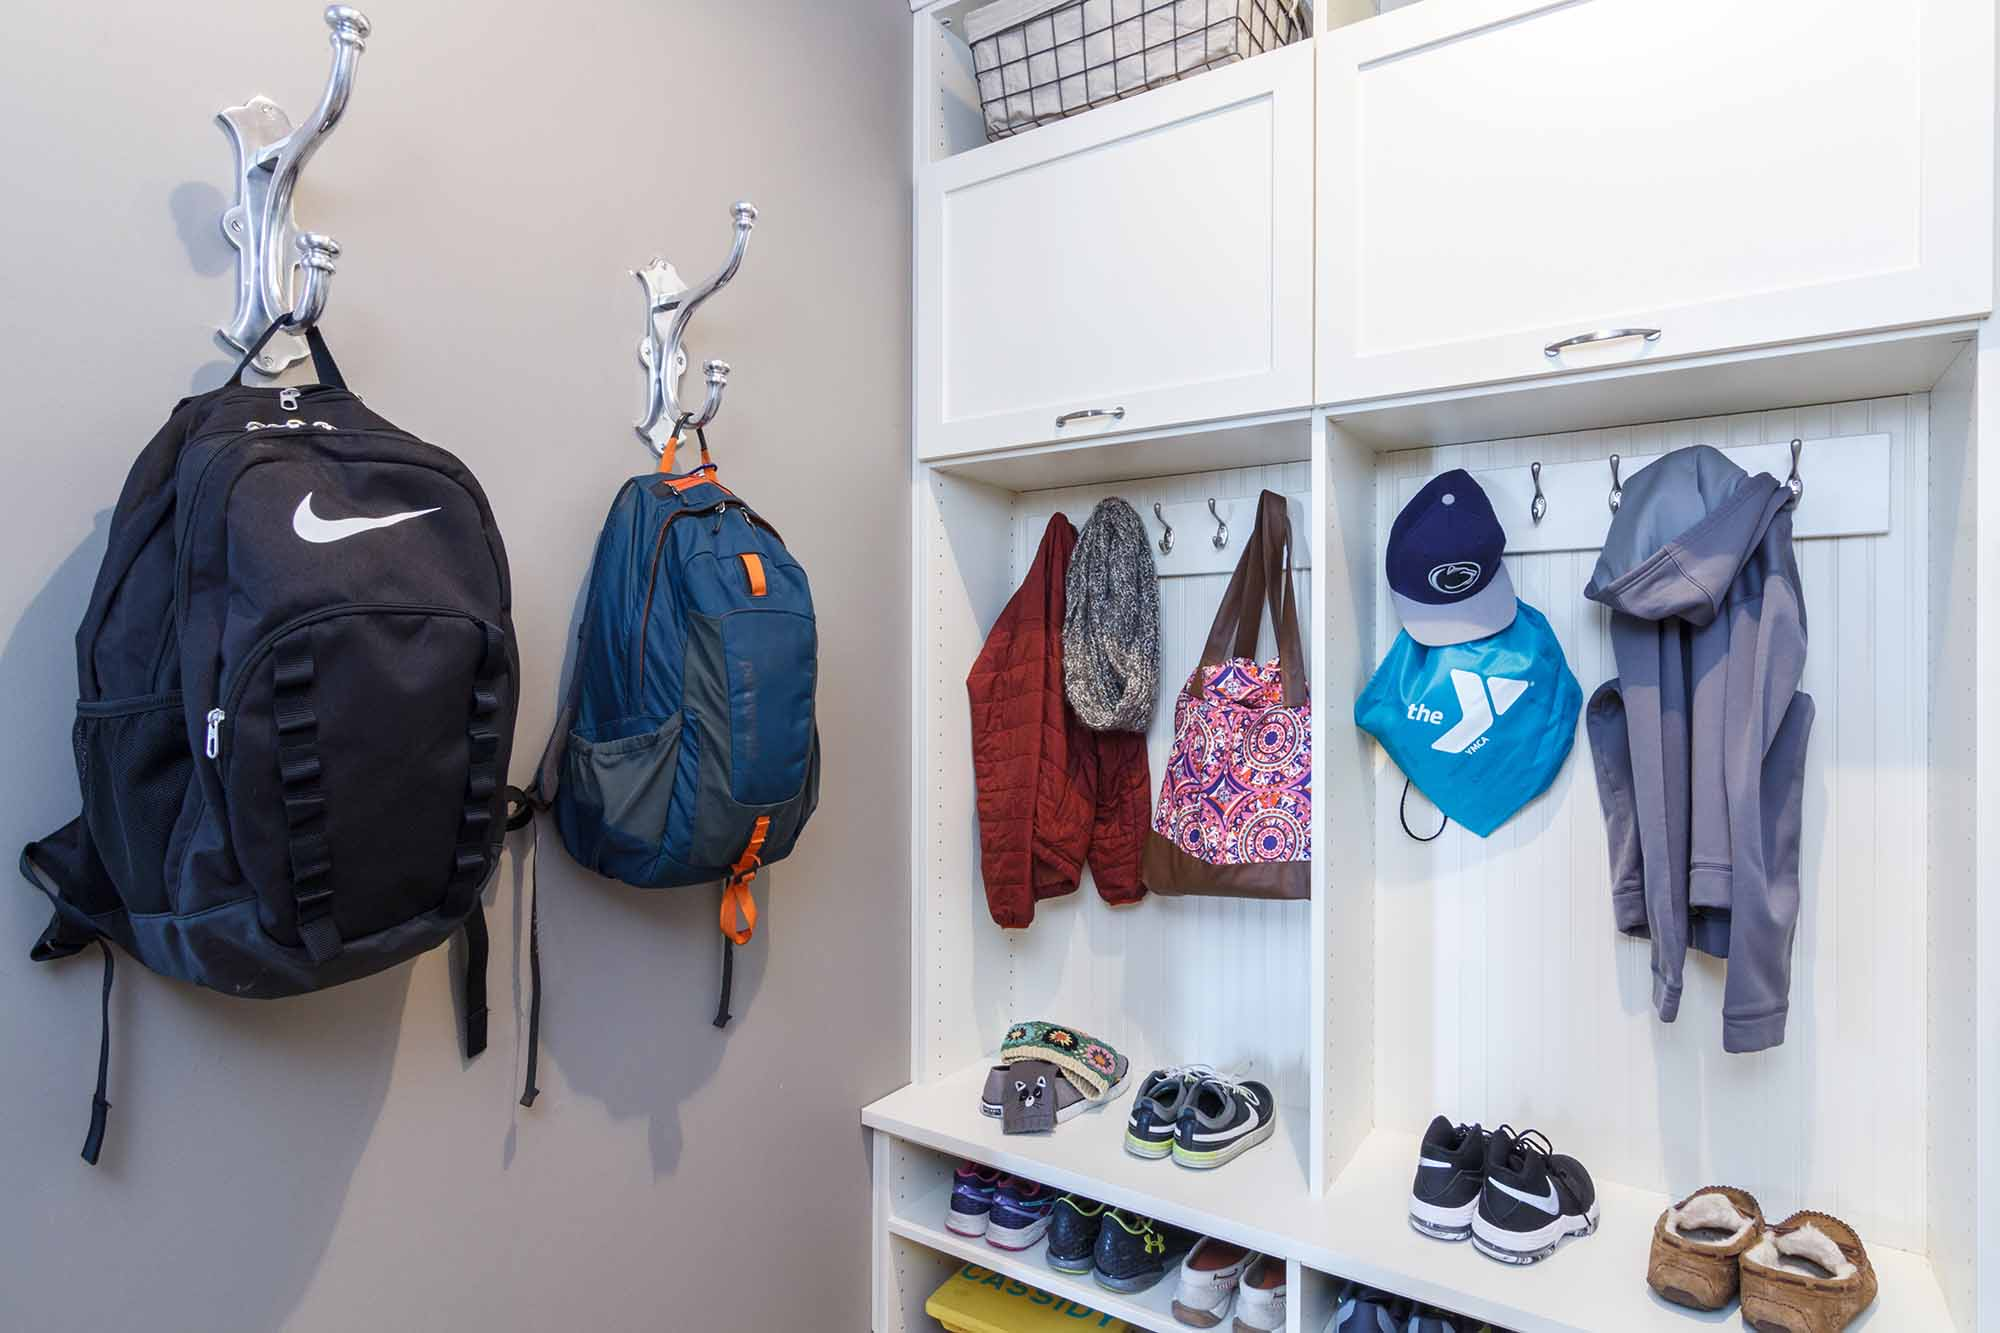 Clean and organized mudroom with cubbies